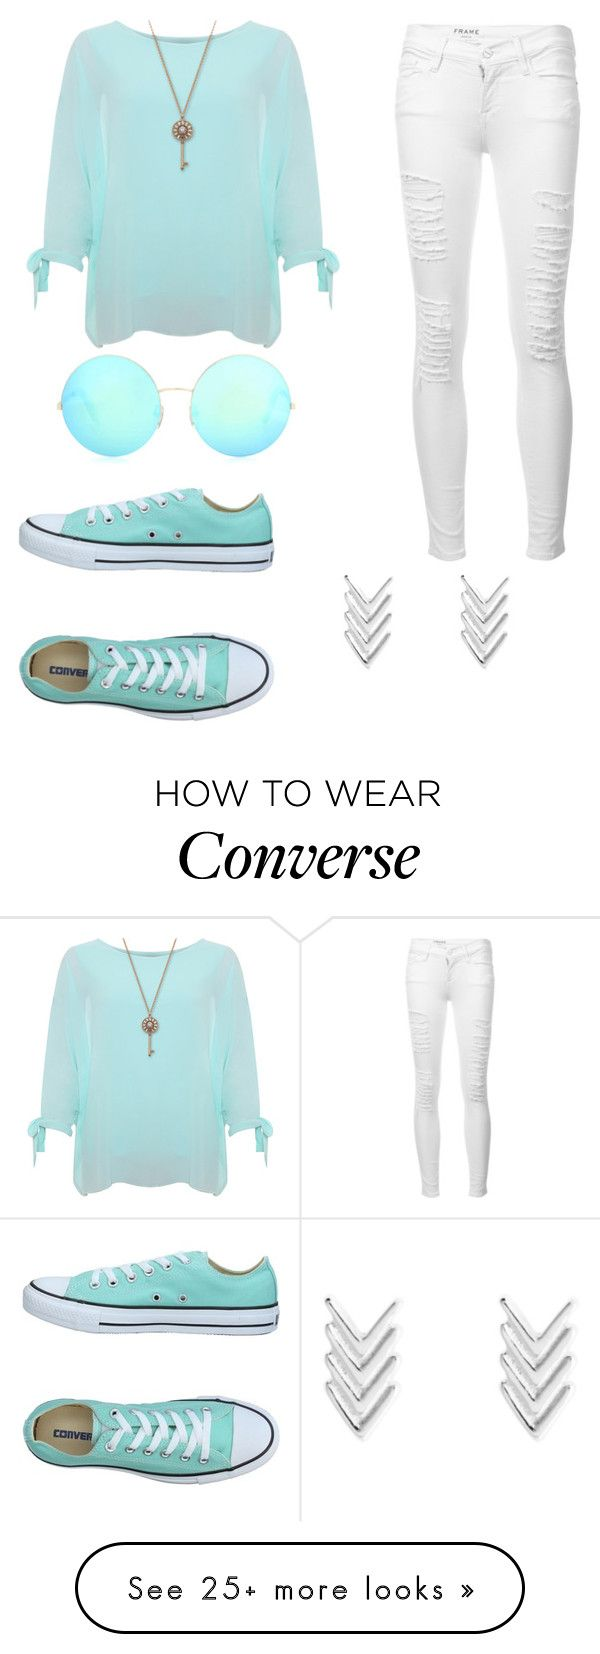 """Untitled #61"" by mianestasio on Polyvore featuring WearAll, Frame, Converse and Victoria Beckham"